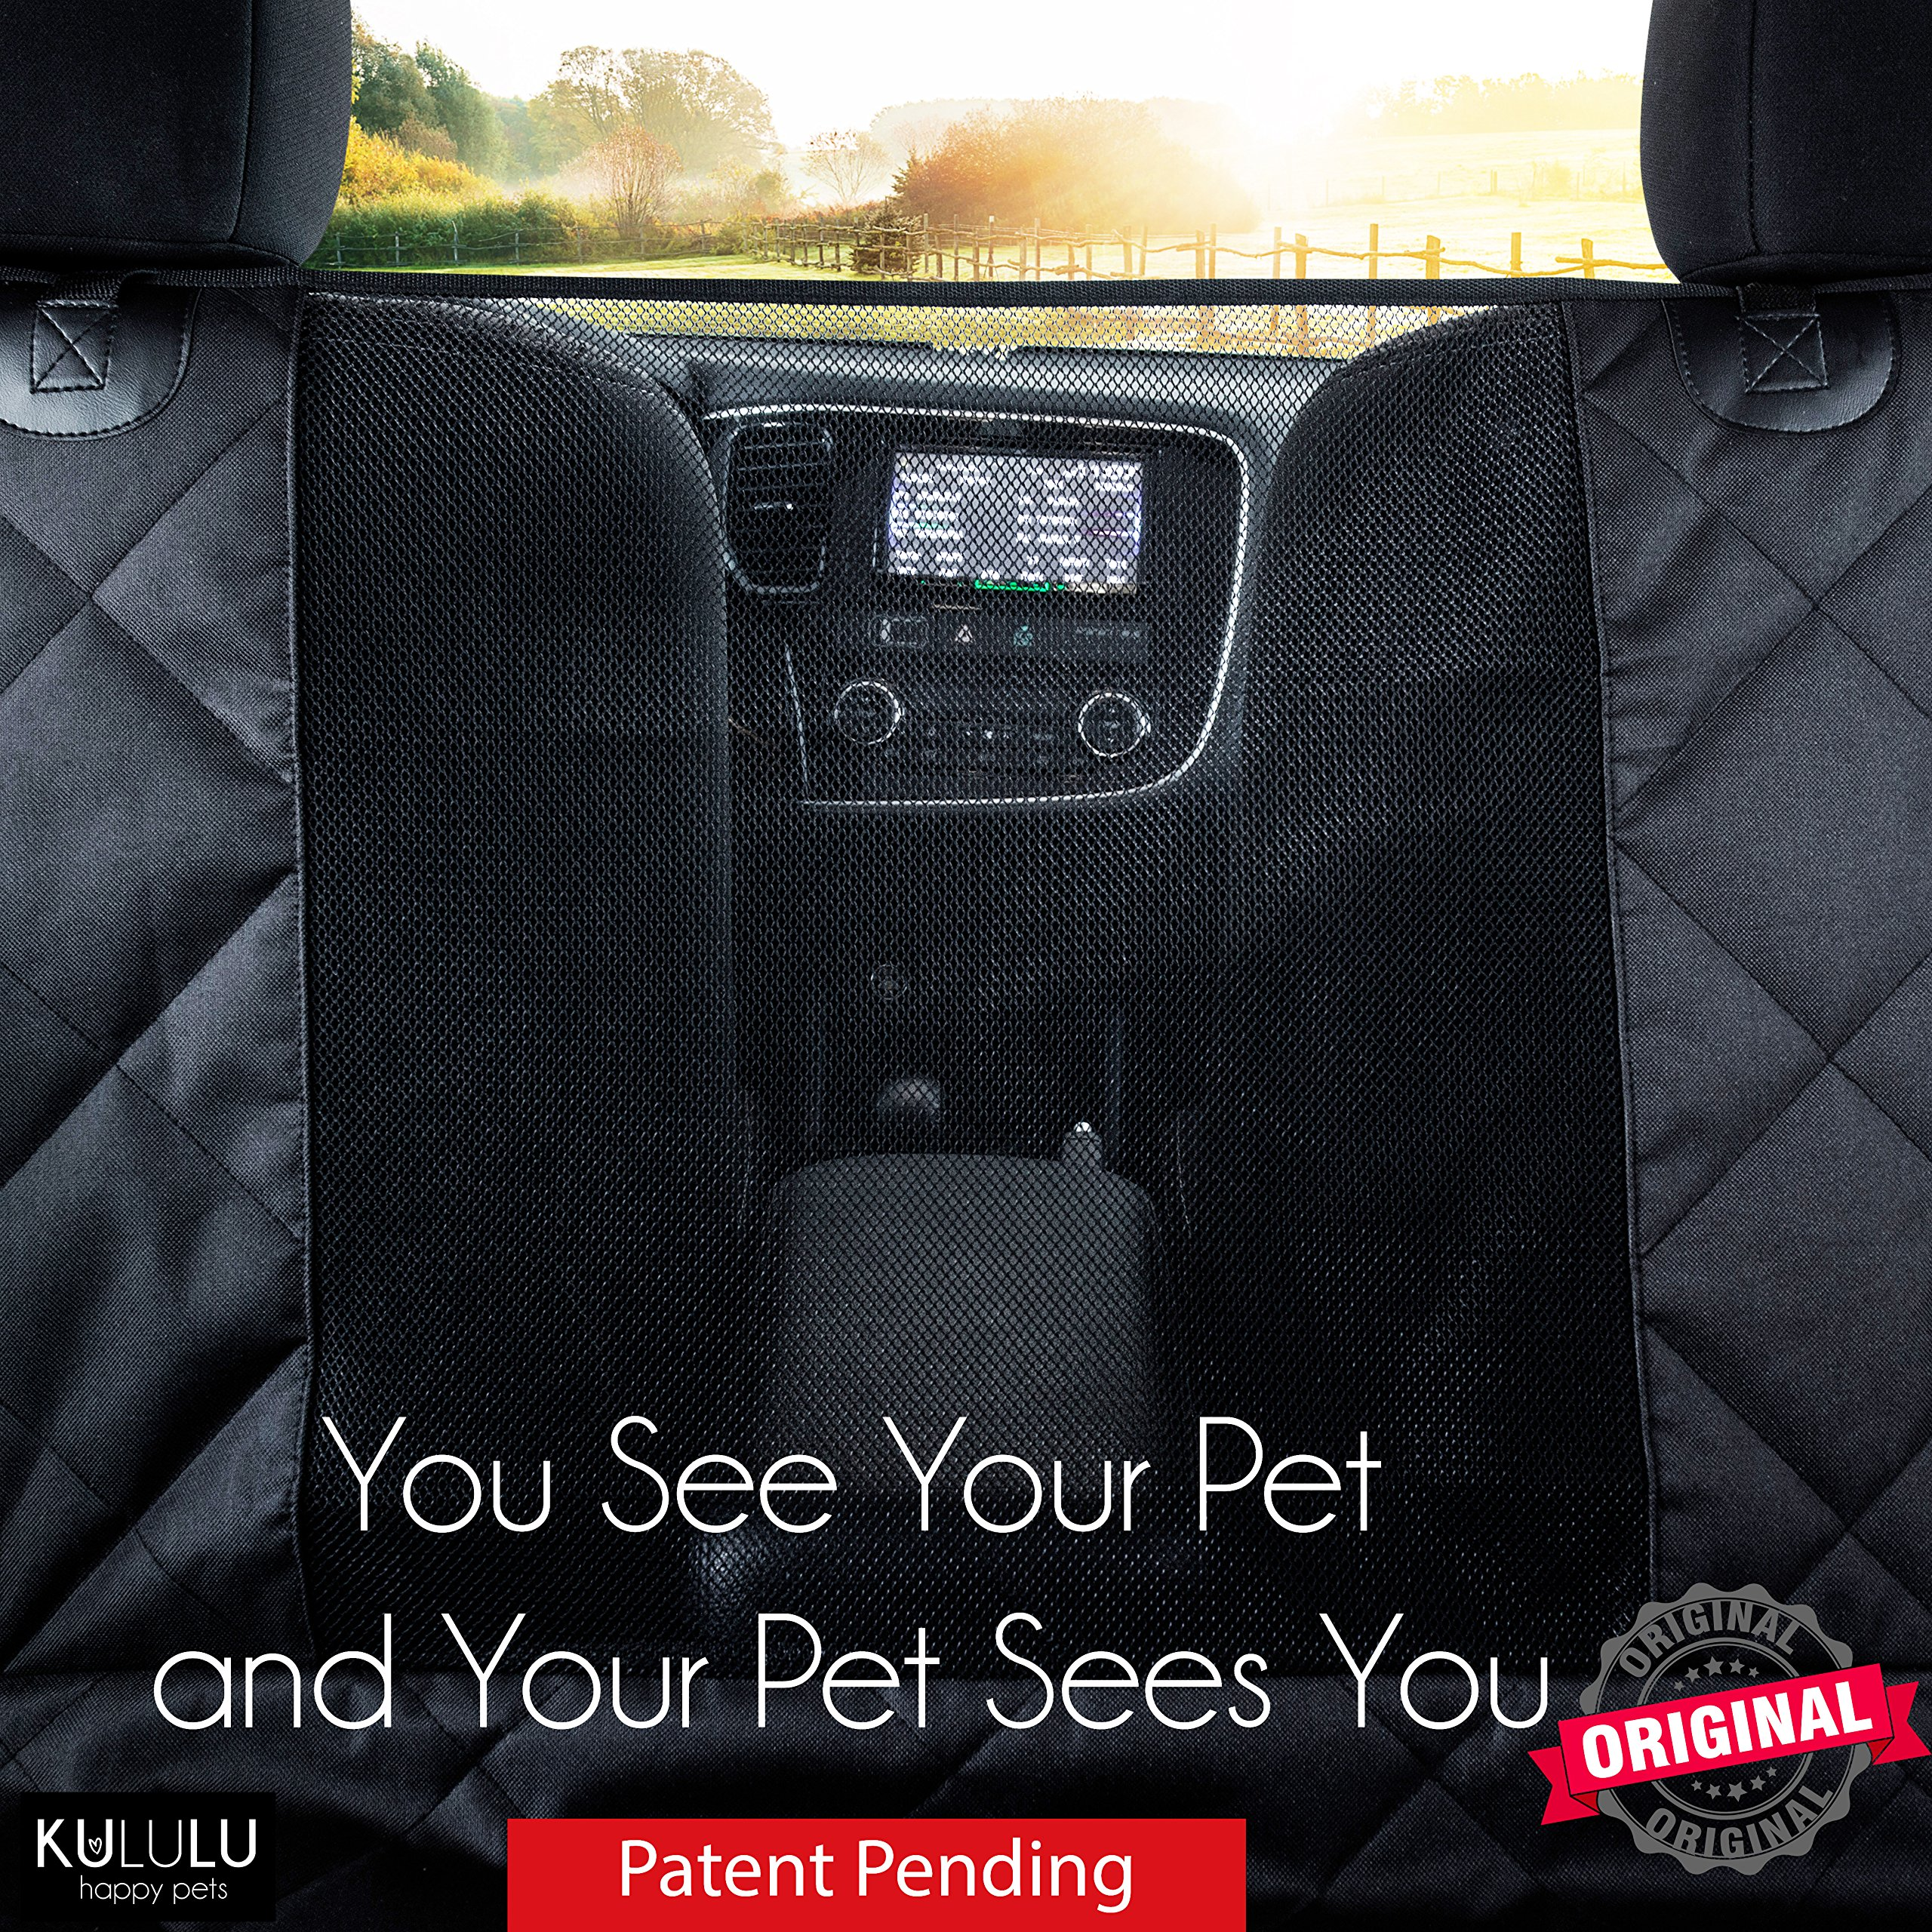 PREMIUM XL Dog Car Seat Cover Hammock Style And Cargo Liner For Cars, Trucks And Suv's. The Original Design You Can See Your Pet & Your Pet Sees You with the ClearView Window- Keeps Your Pet Calm. by Kululu (Image #2)